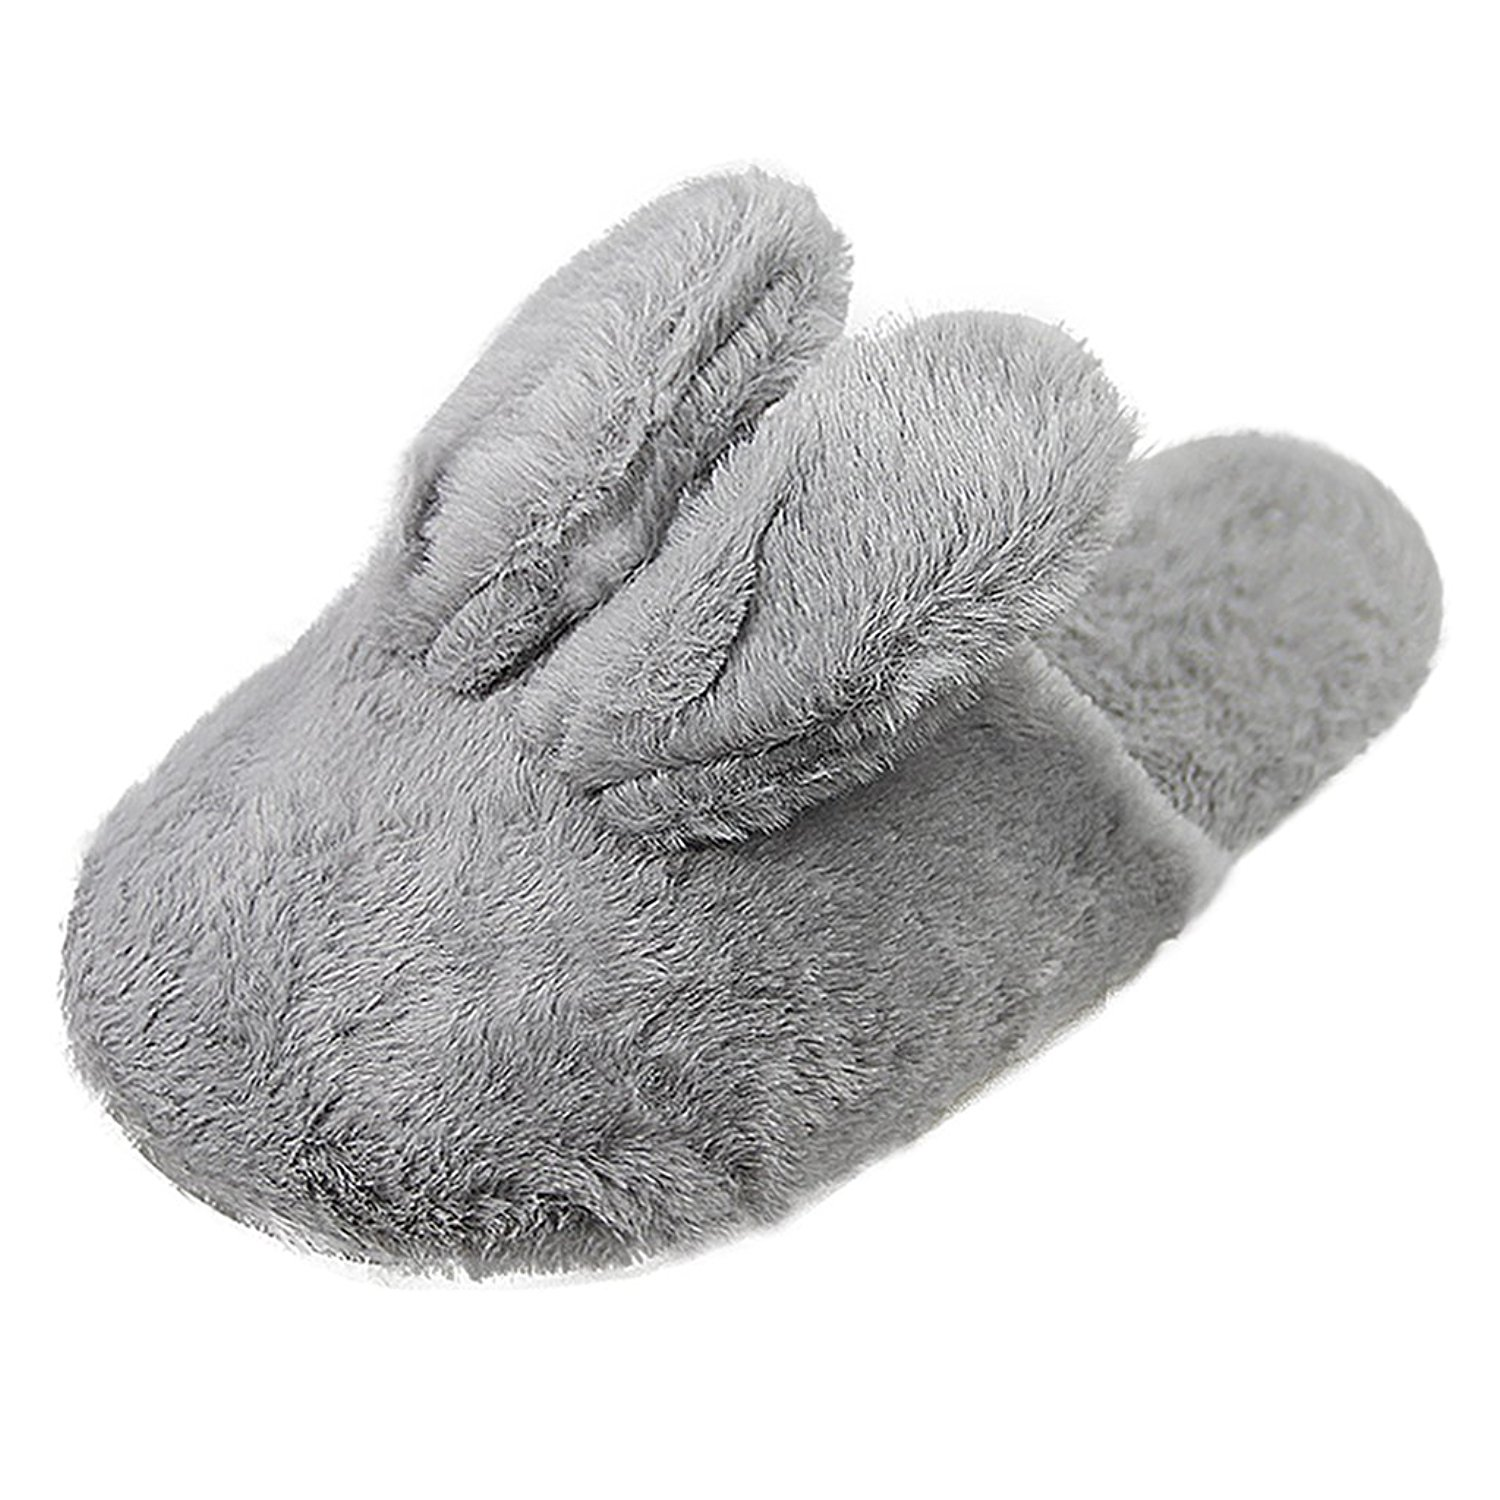 Cartoon Rabbit Cozy House Slippers, Women's Girls Men's Boys Memory Foam Fuzzy Plush Winter Warm Indoor Slippers Mules Anti-slip Slip-on Fur Slide Shoes Lightweight Home Spa Fleece Sandal Clog Slipper